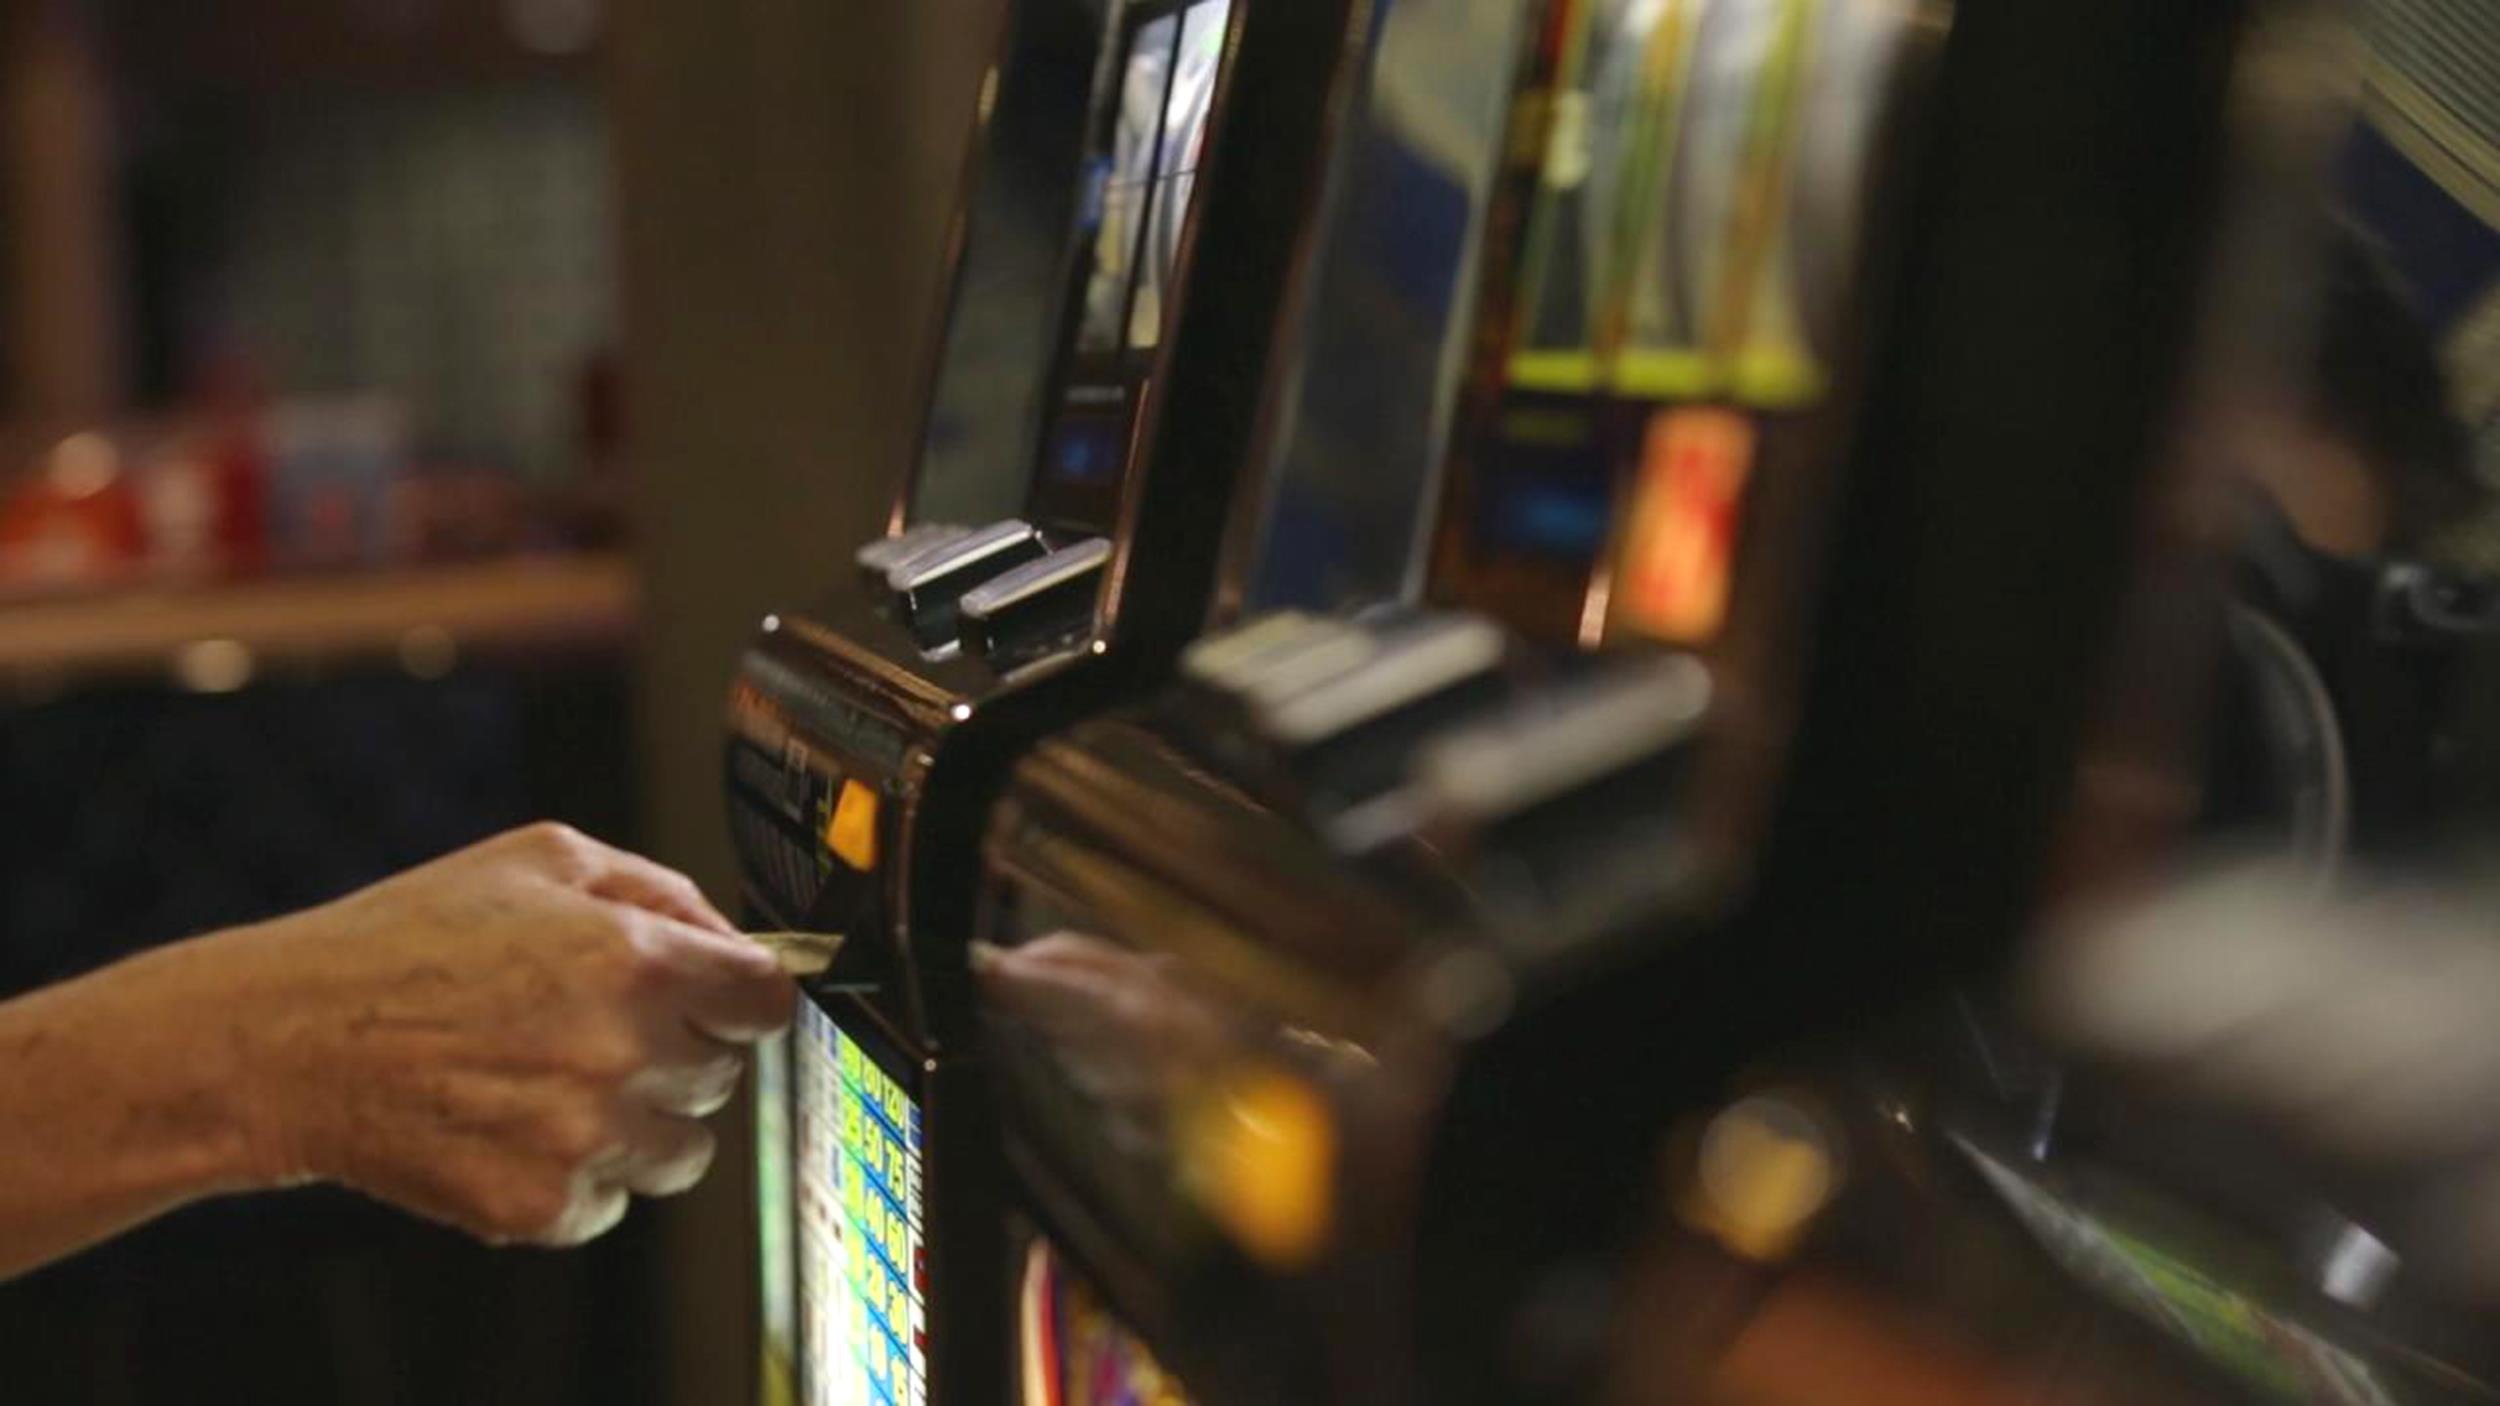 Image: A person gambles at a casino